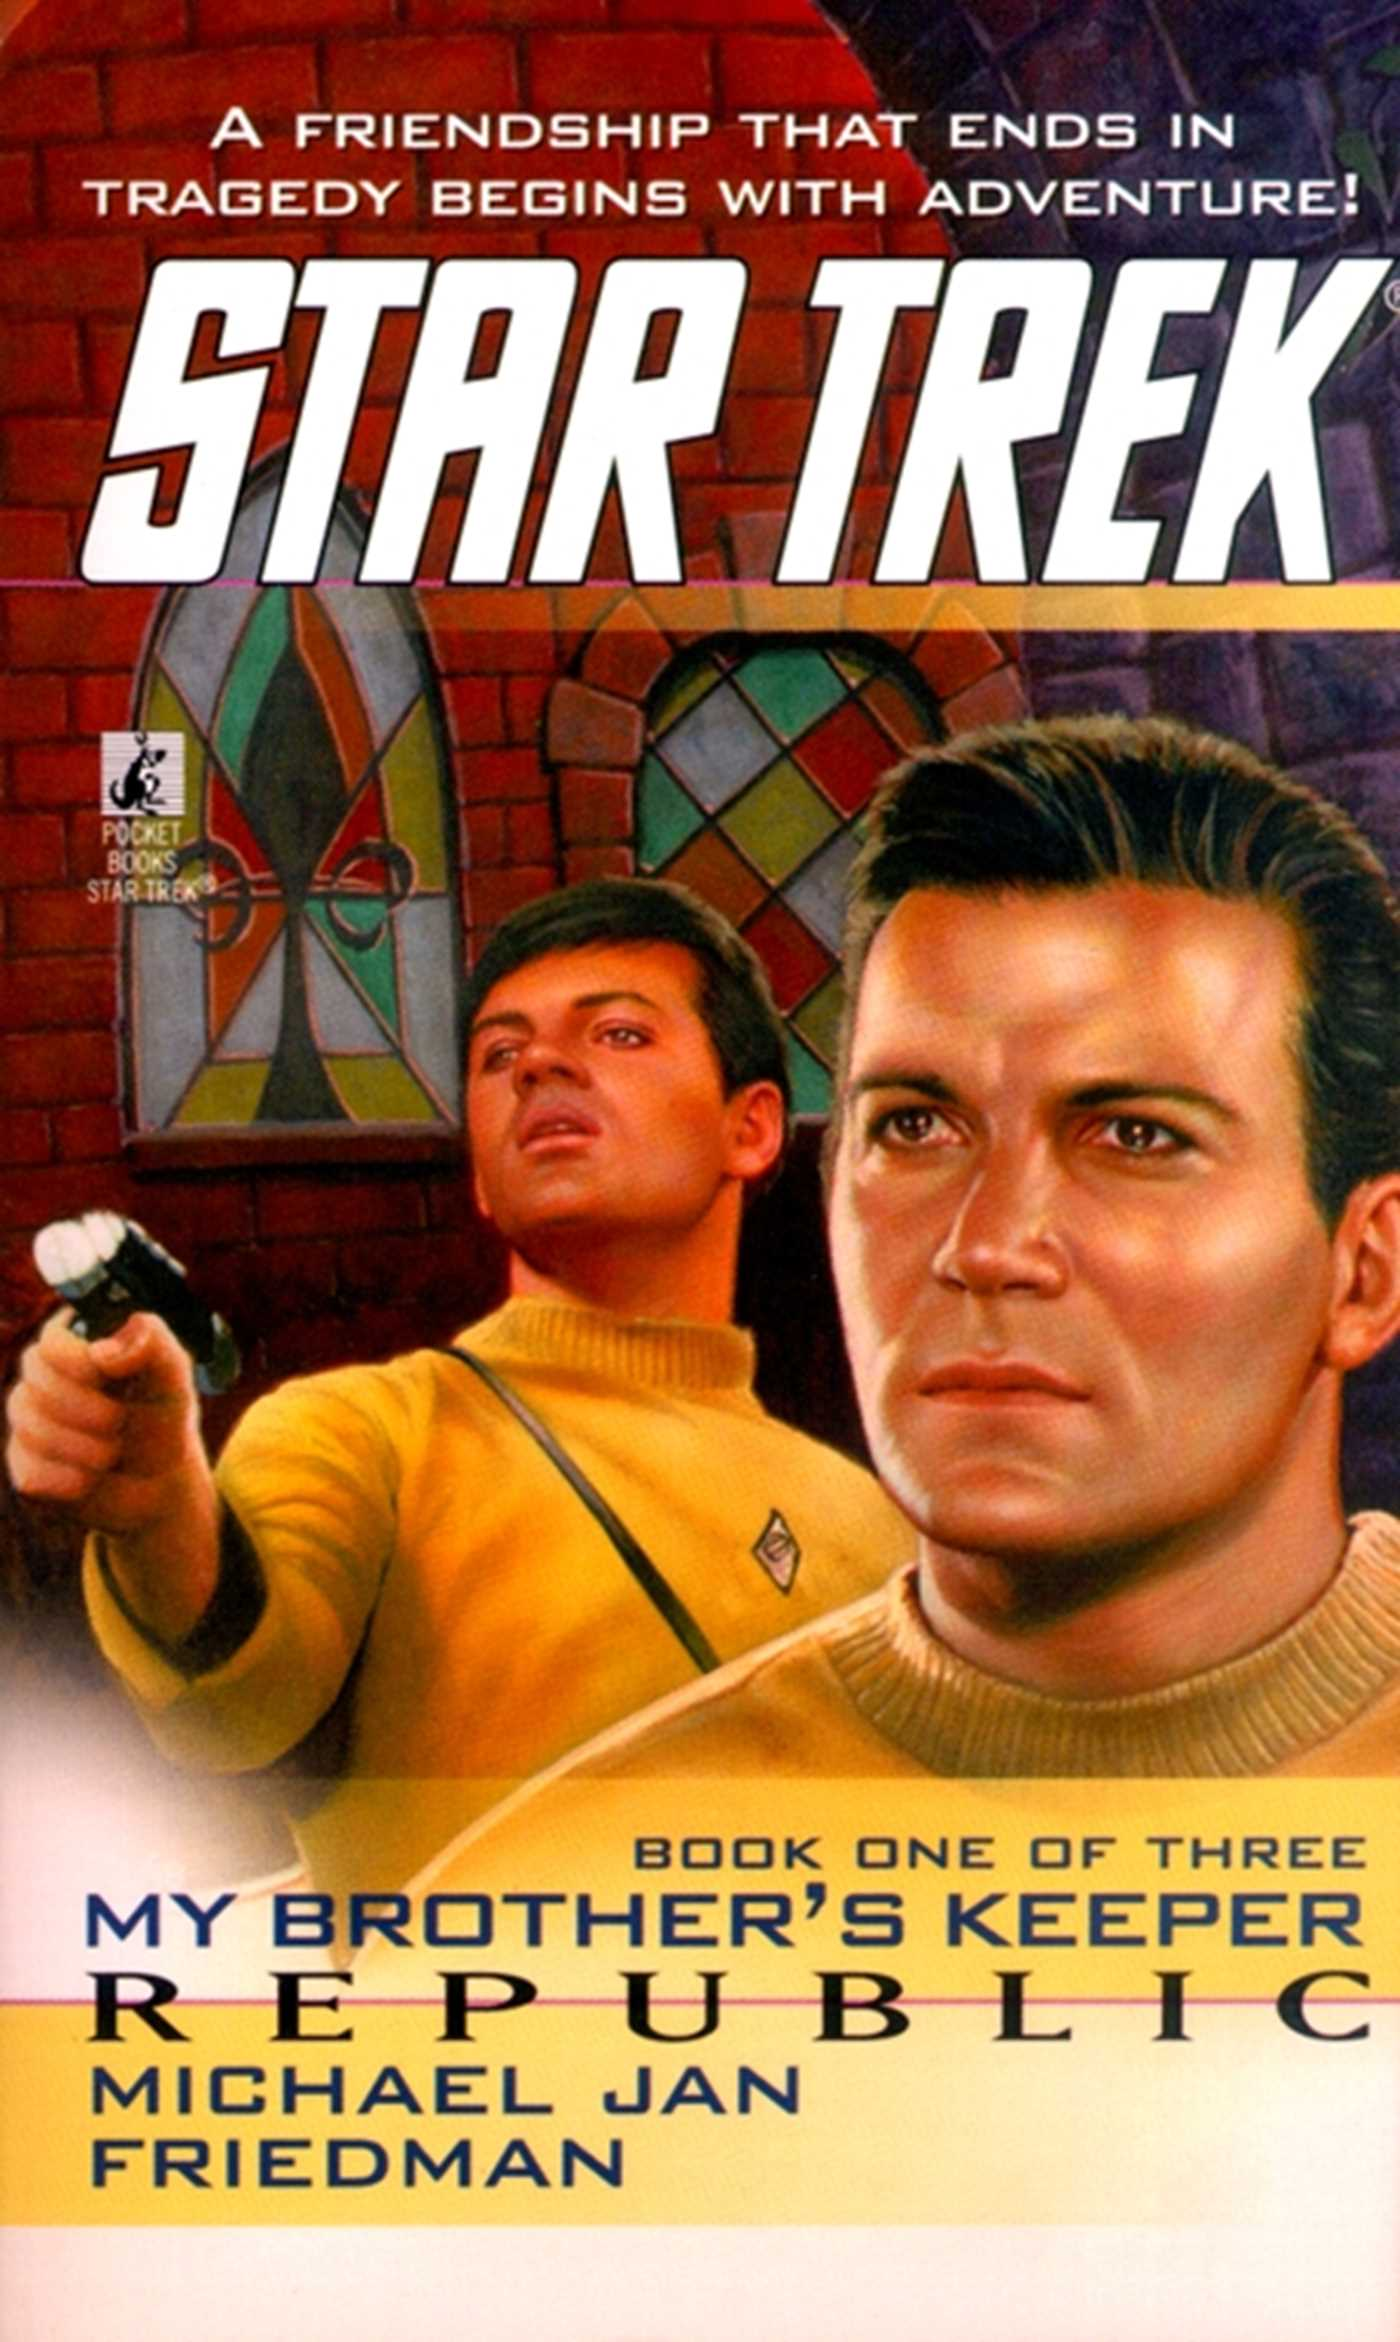 Star trek the original series my brothers keepe 9780743454025 hr